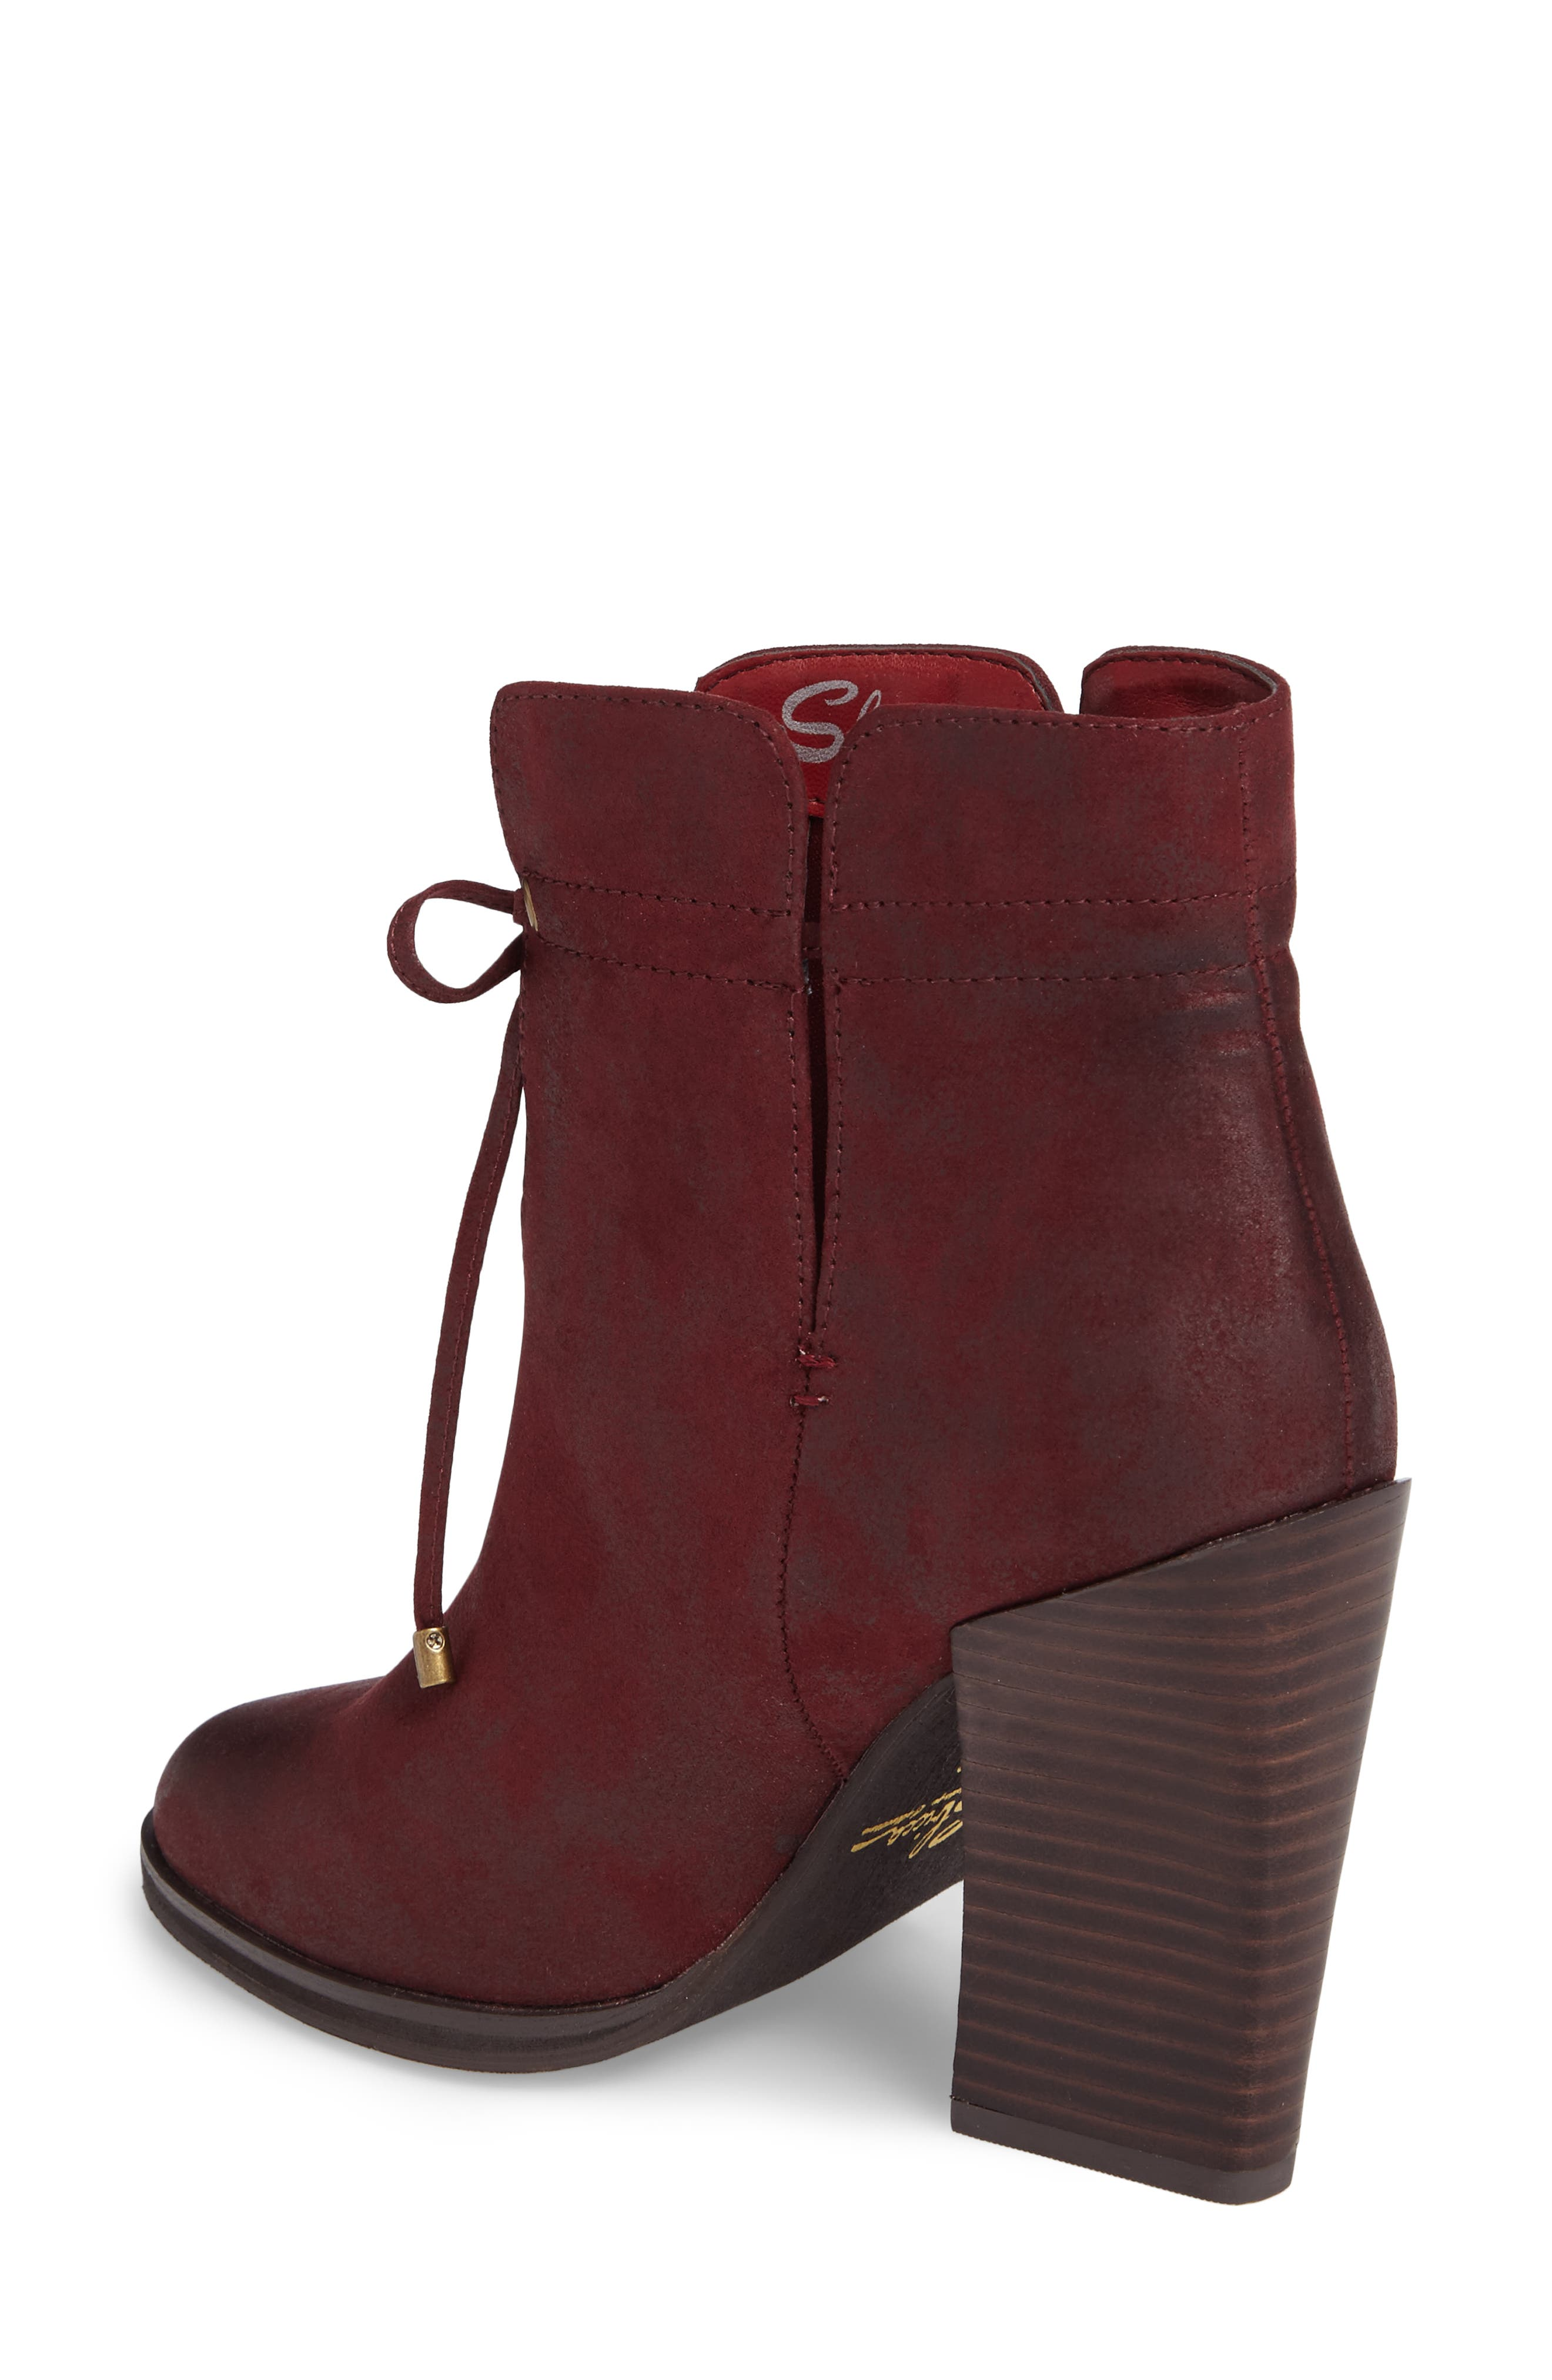 Chick Flick Bootie,                             Alternate thumbnail 6, color,